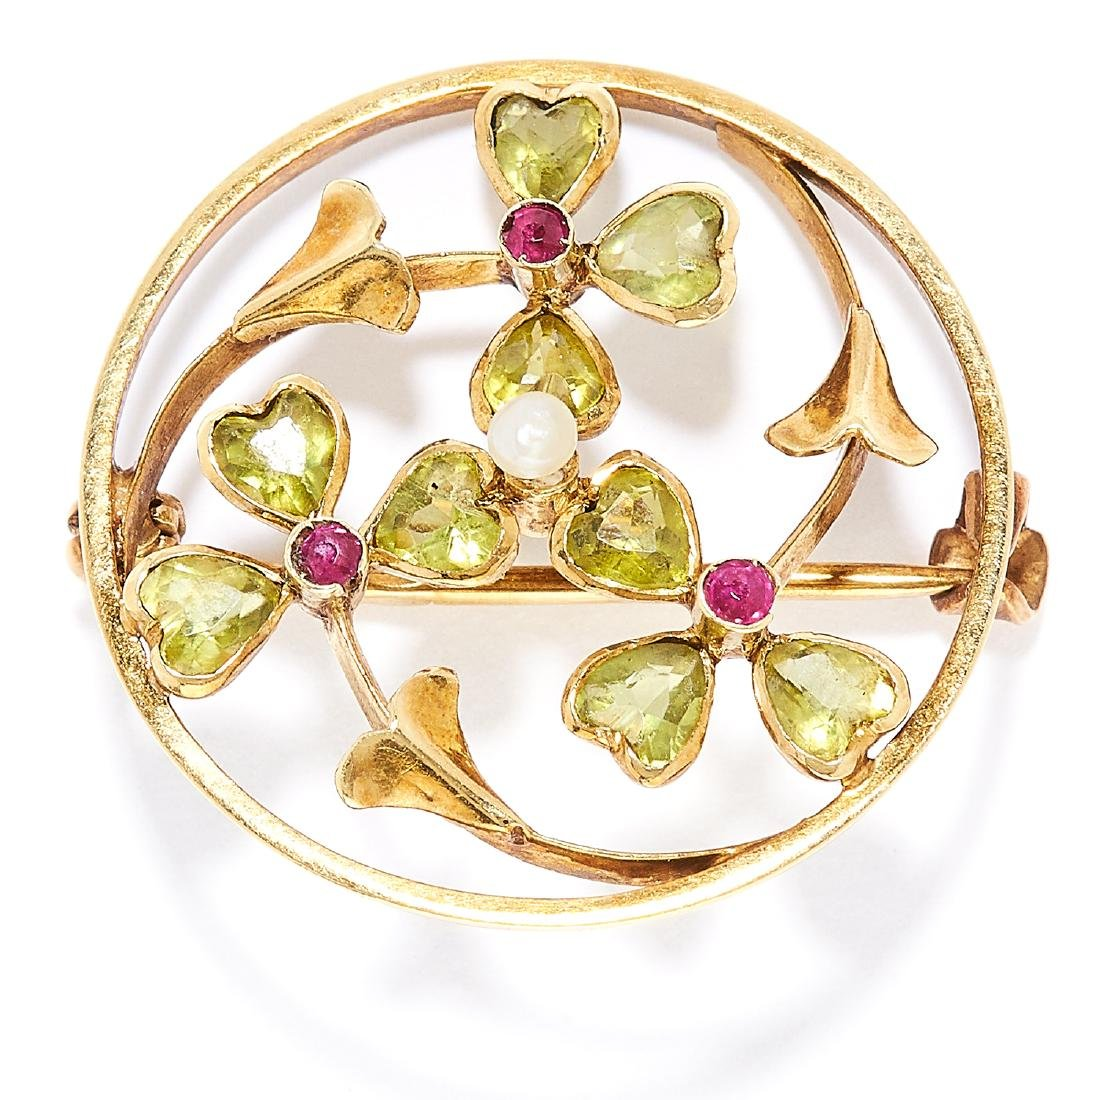 ANTIQUE PERIDOT, RUBY AND PEARL BROOCH in 15ct yellow